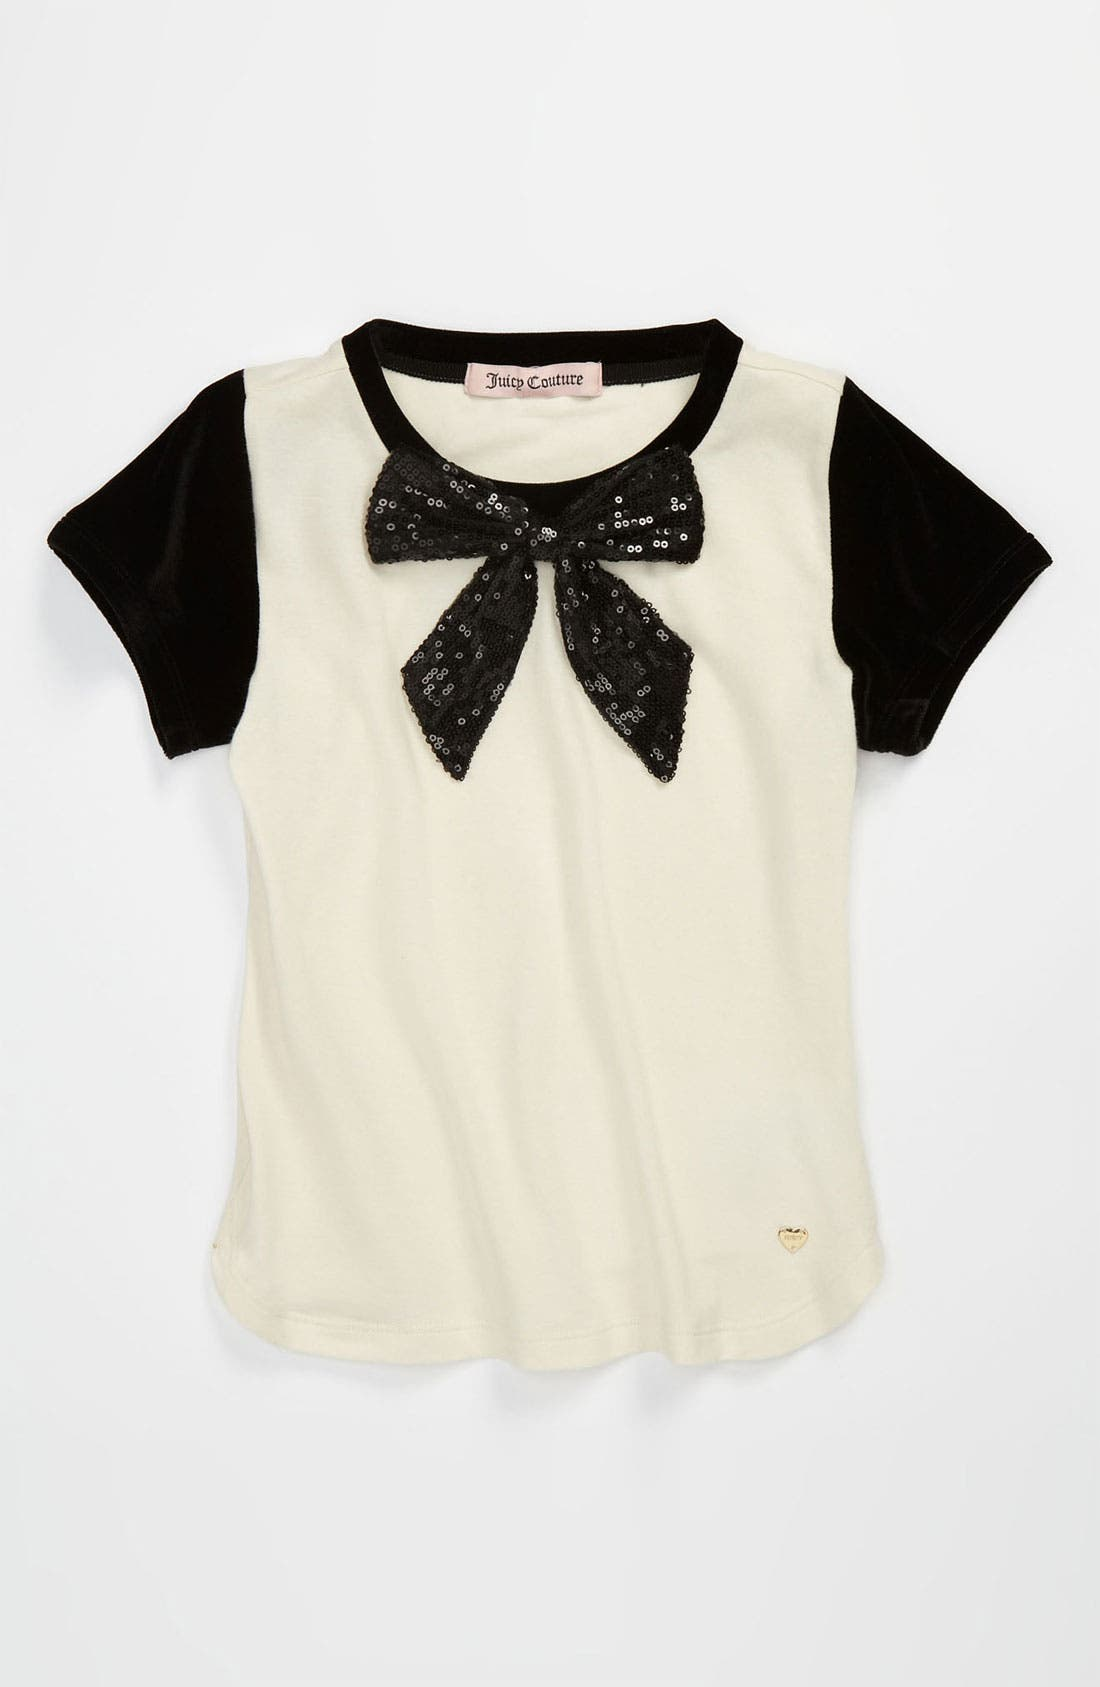 Alternate Image 1 Selected - Juicy Couture 'Fashion Bow' Top (Little Girls & Big Girls)